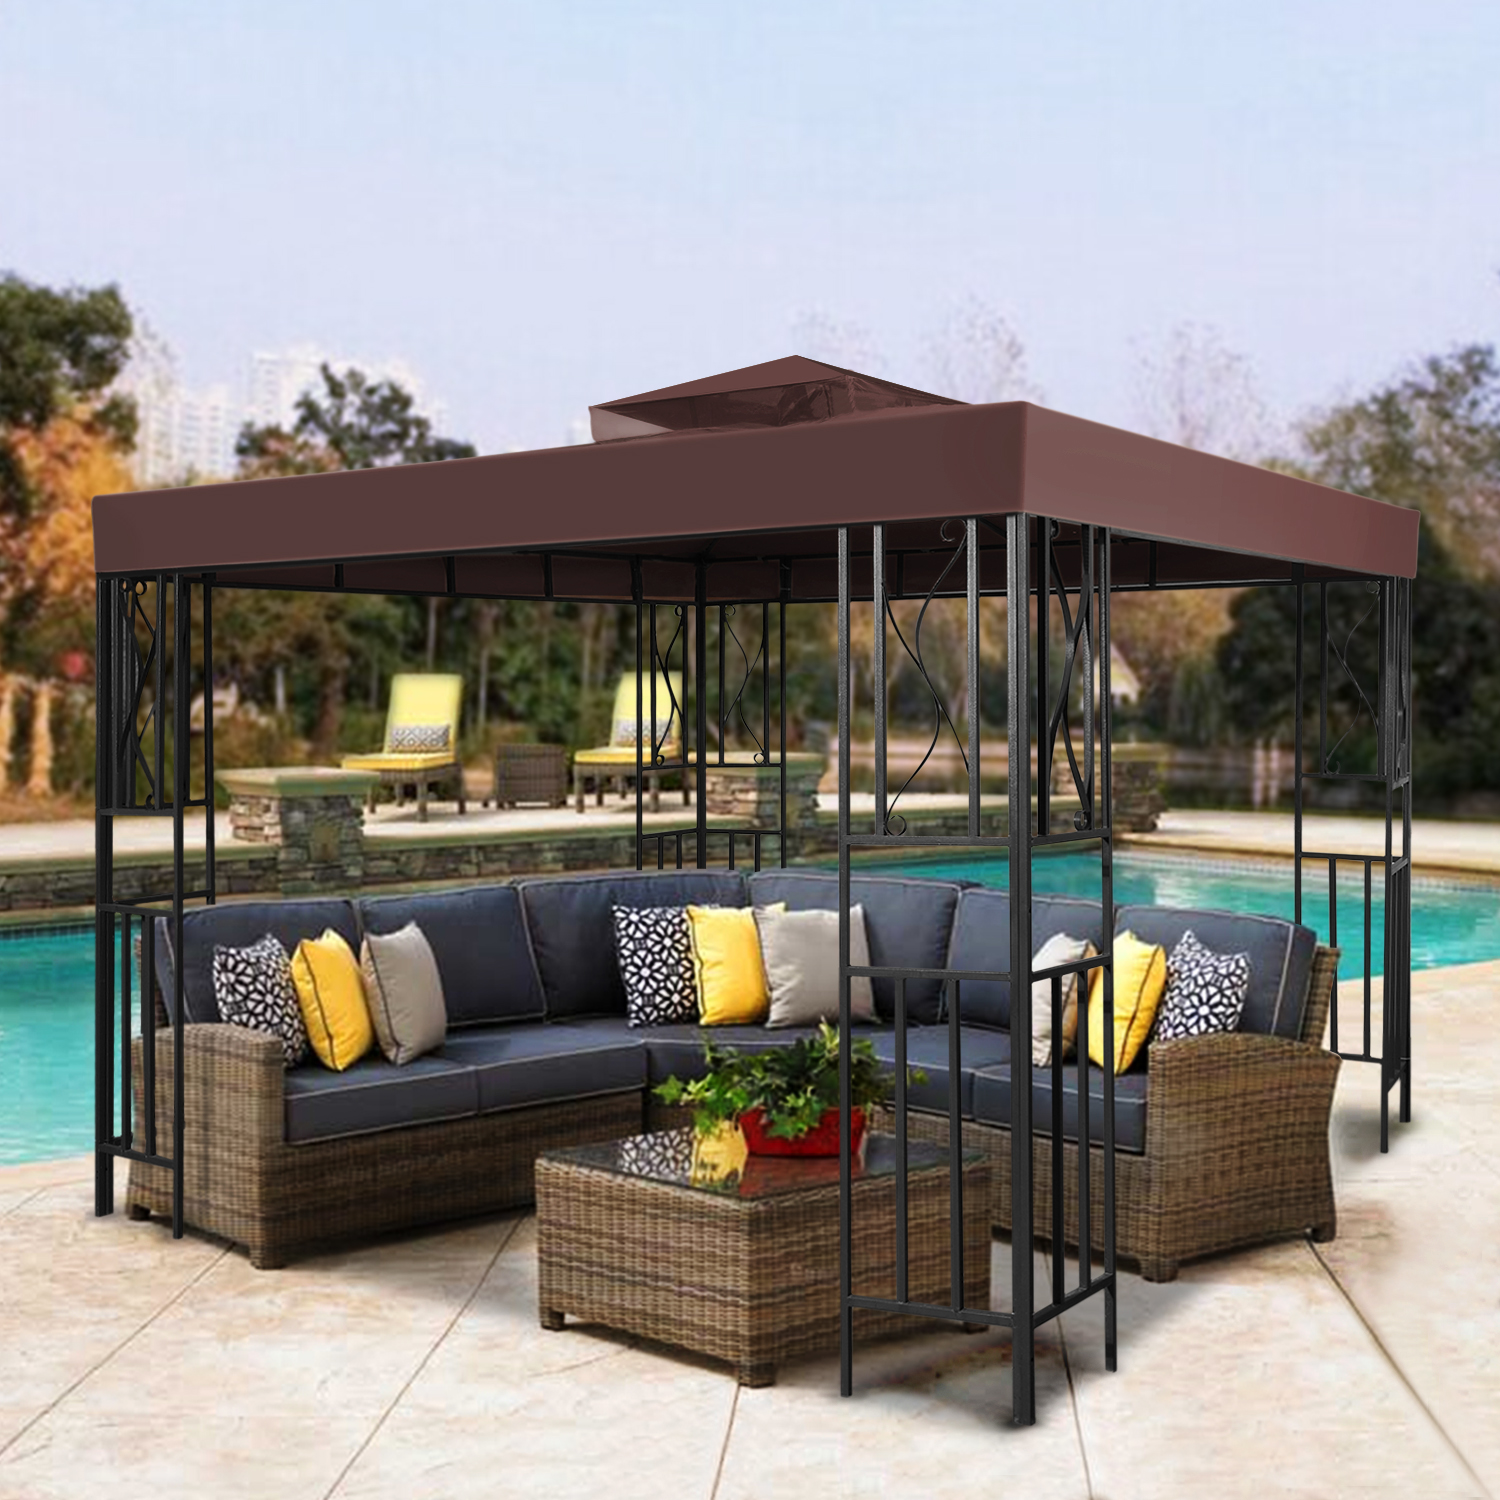 12 X Gazebo Canopy Top Replacement Cover Brown